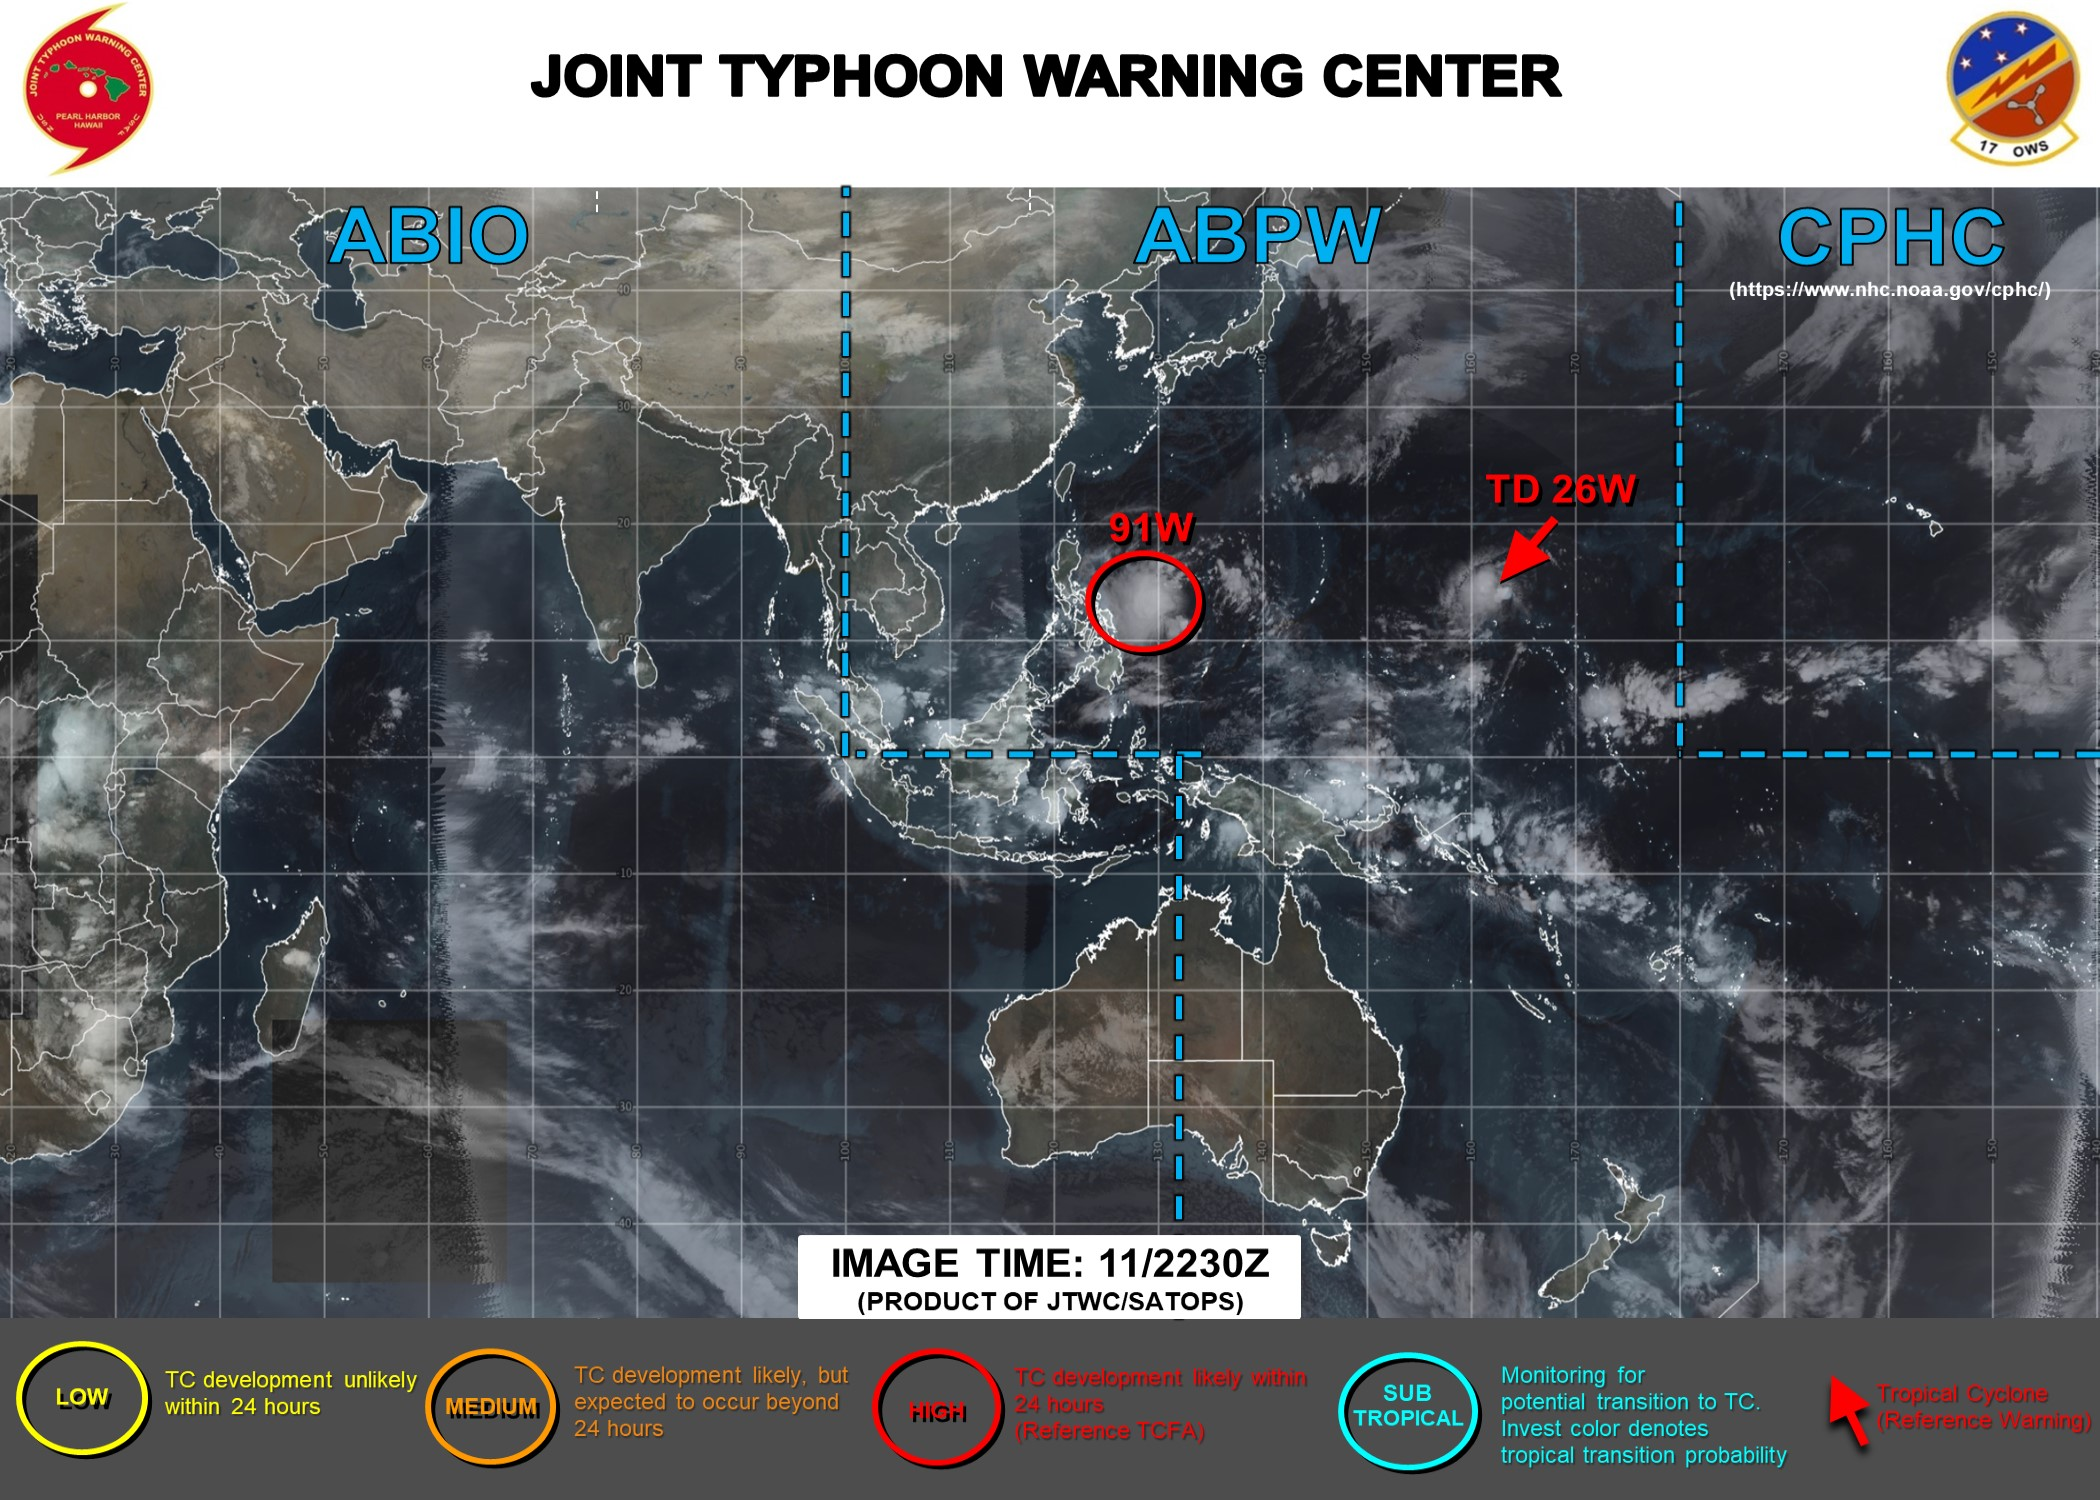 Invest 91W: Tropical Cyclone Formation Alert. TD 26W: update